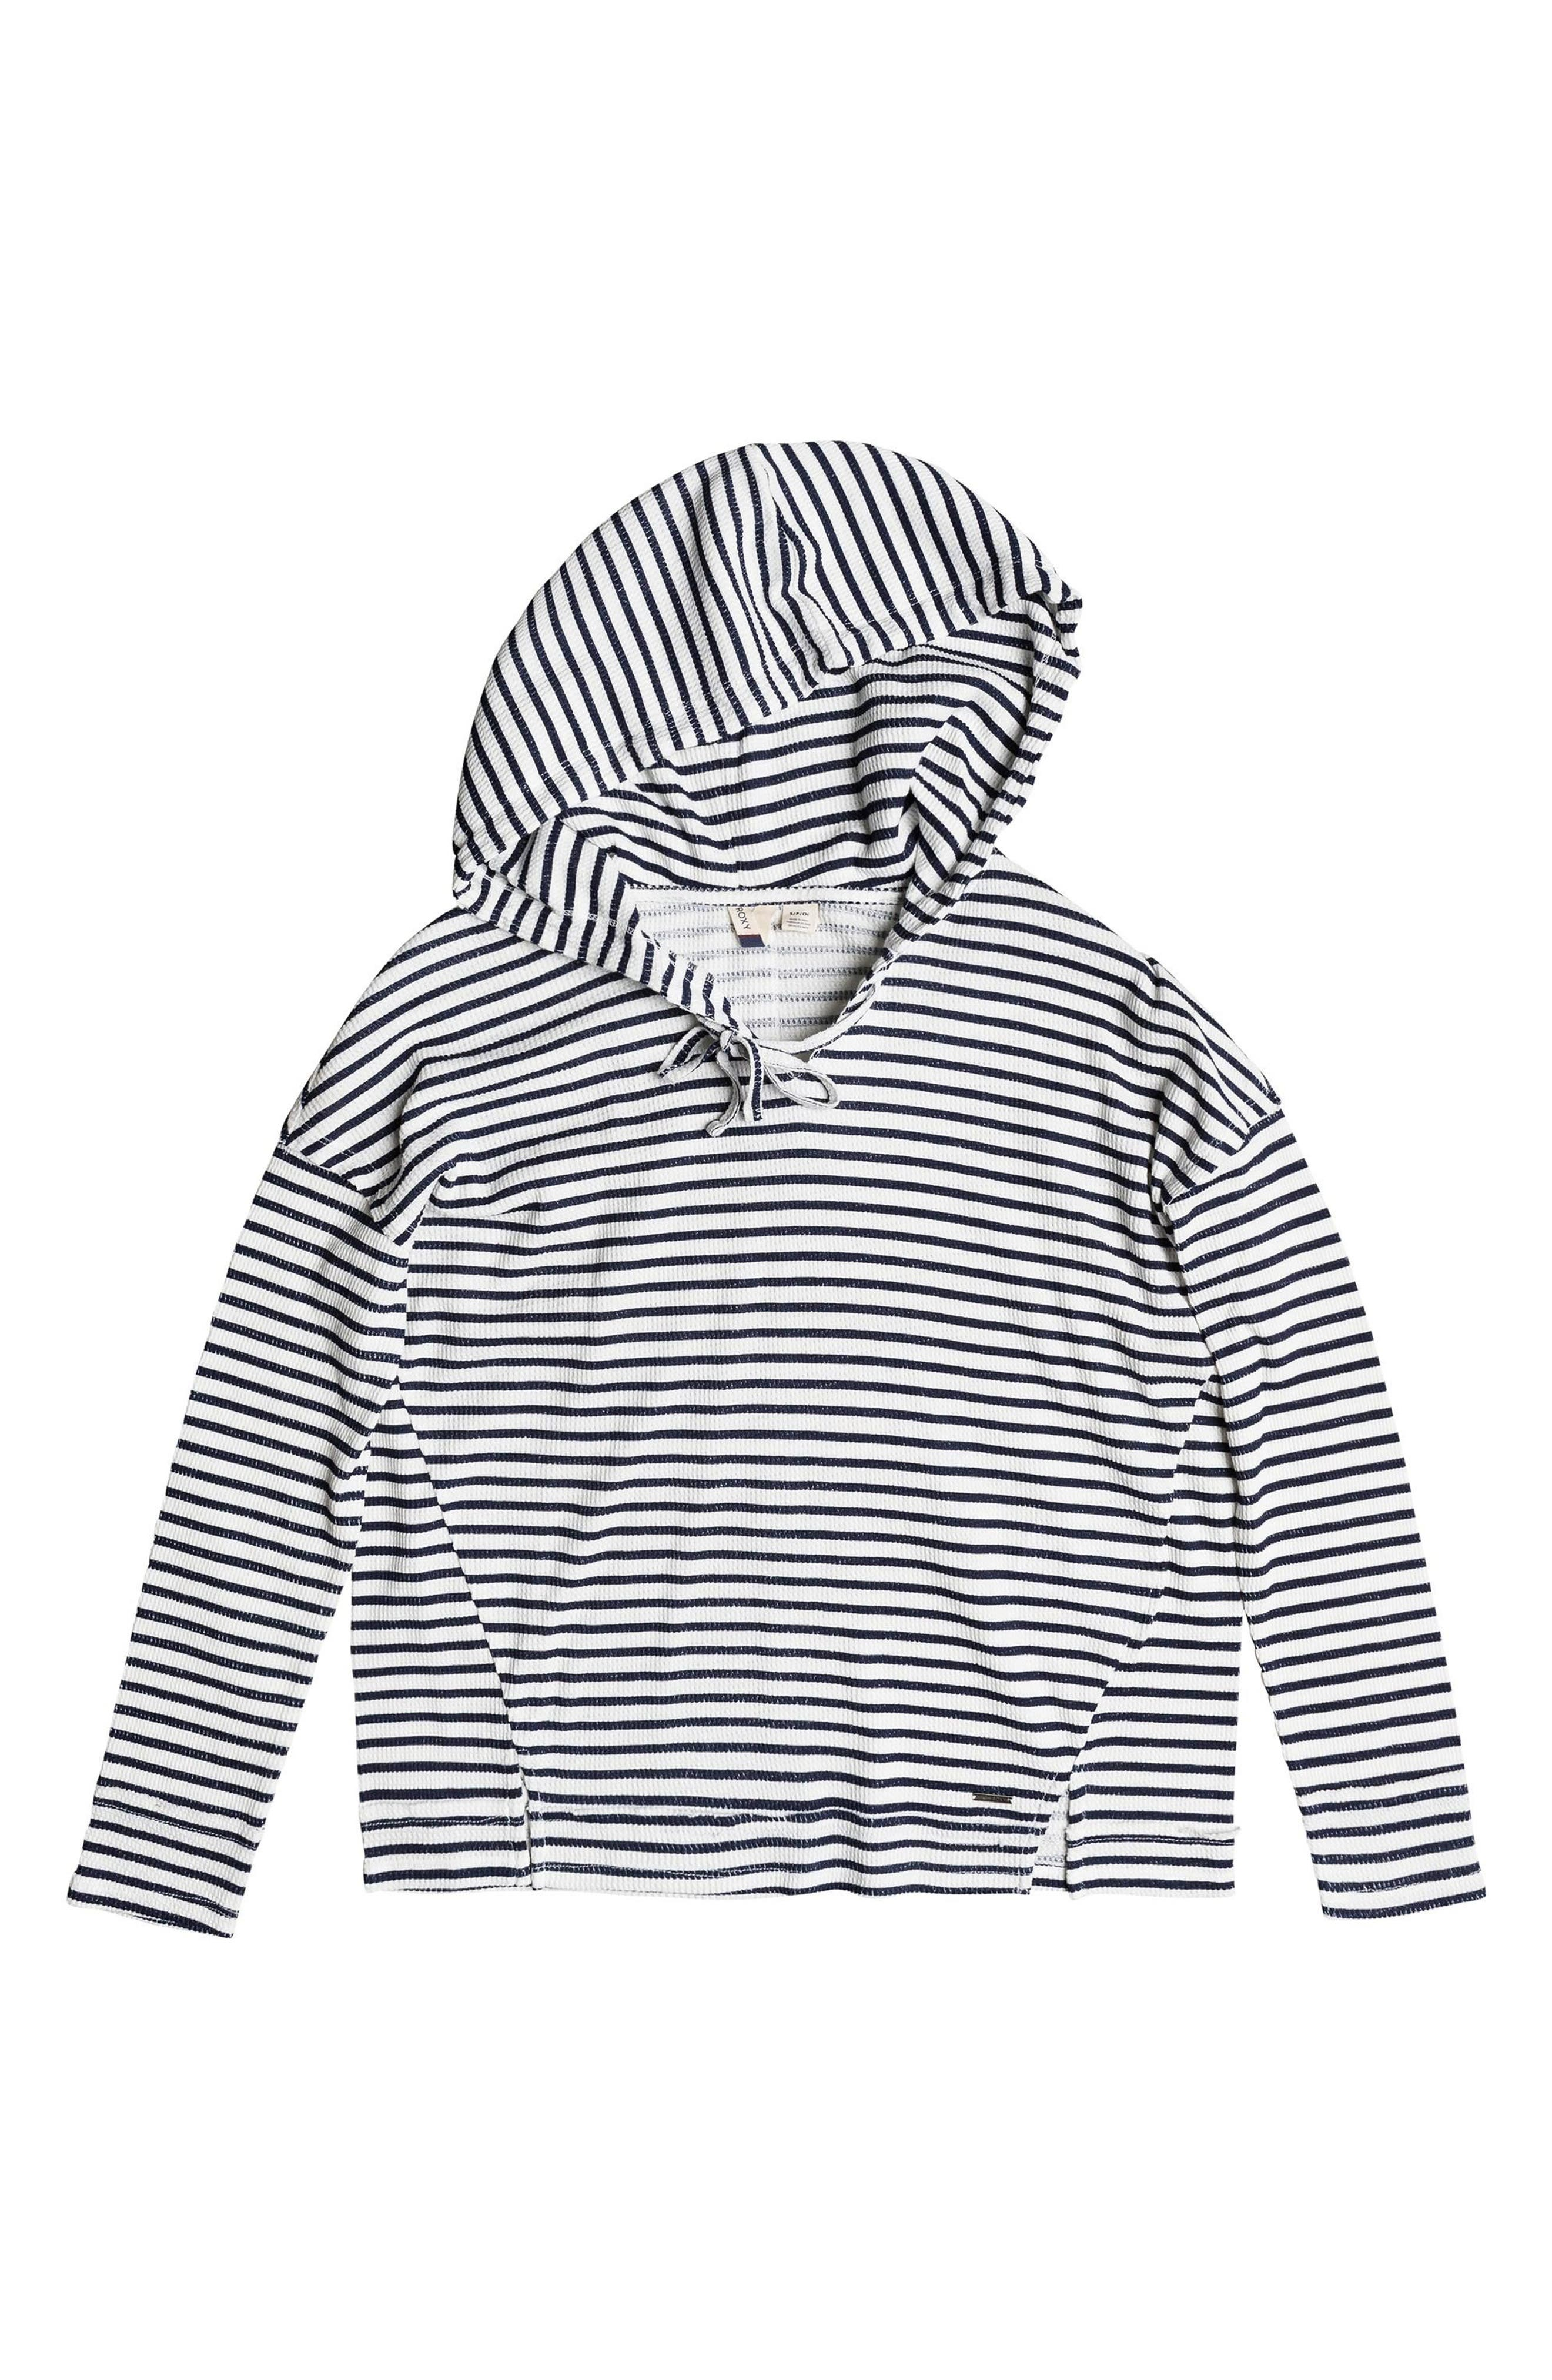 Wanted and Wild Thermal Hooded Top,                             Alternate thumbnail 5, color,                             Marshmallow Classic Stripe Vol